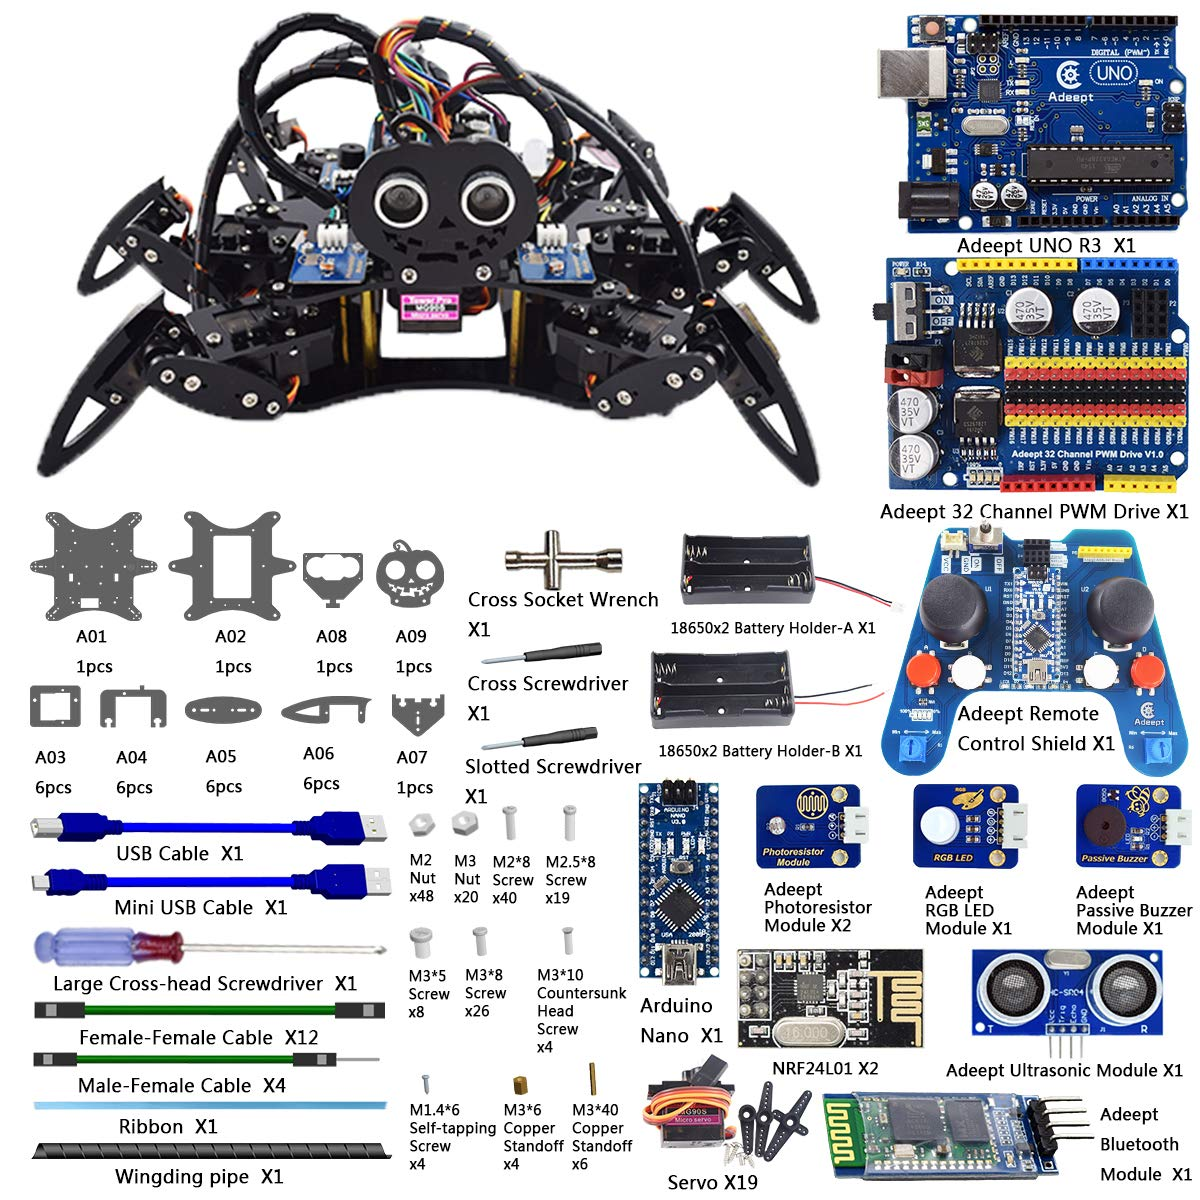 Adeept Hexapod 6 Legs Spider Robot Kit For Arduino Uno Transformer Diagram Obstacle Avoidance Circuit R3 And Nano 24g Wireless Remote Control Starter